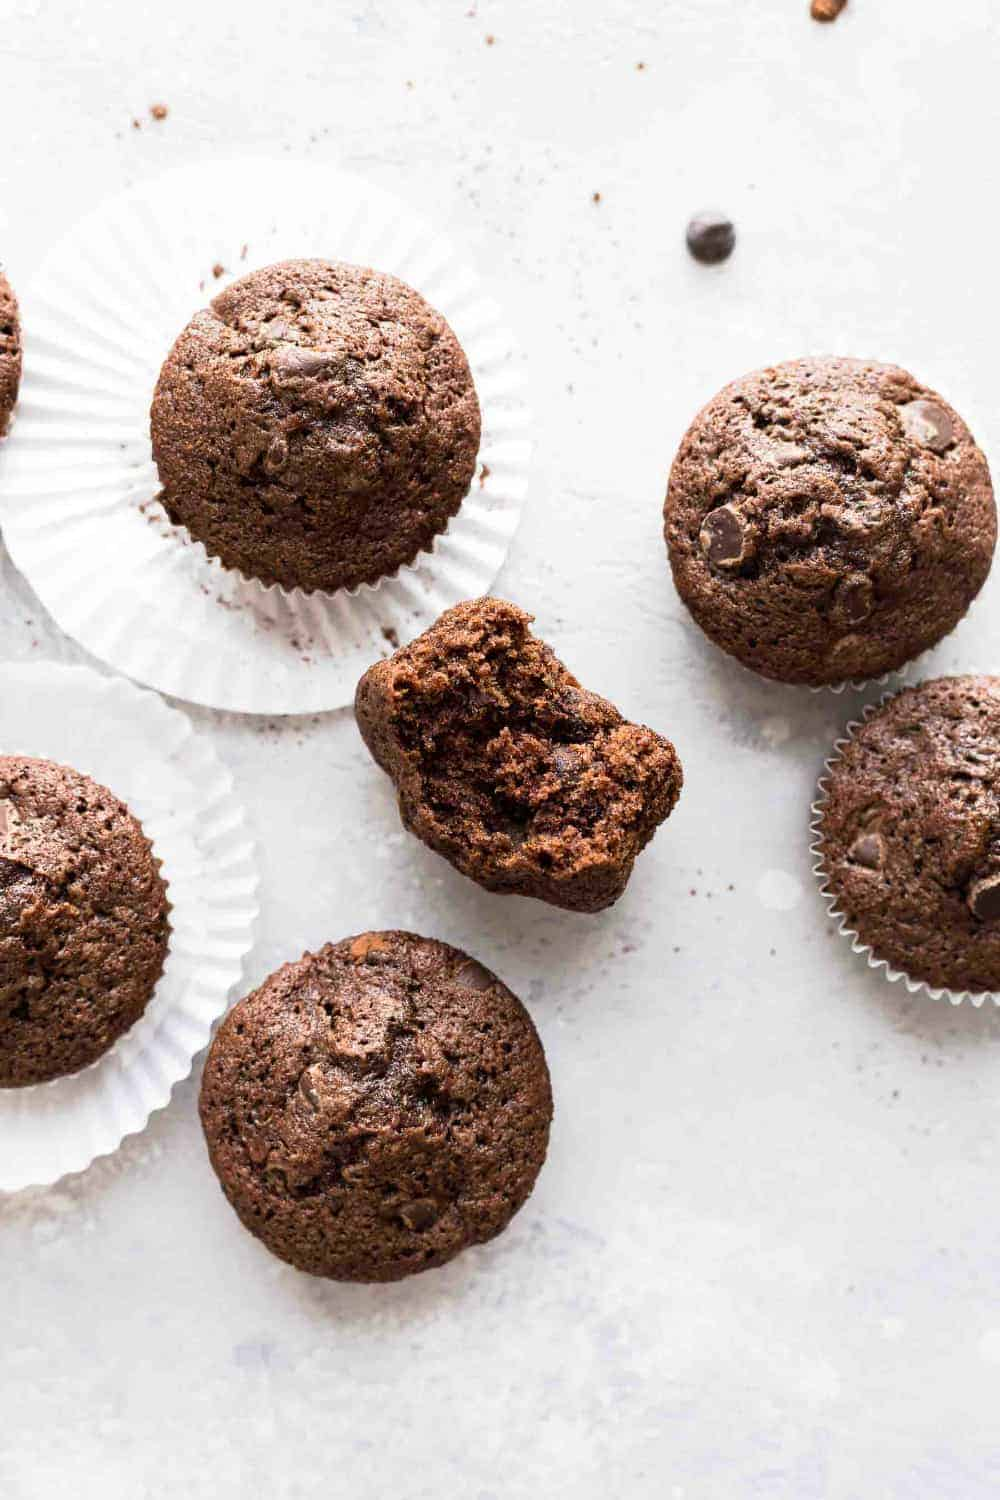 Baked chocolate zucchini muffins on a white surface